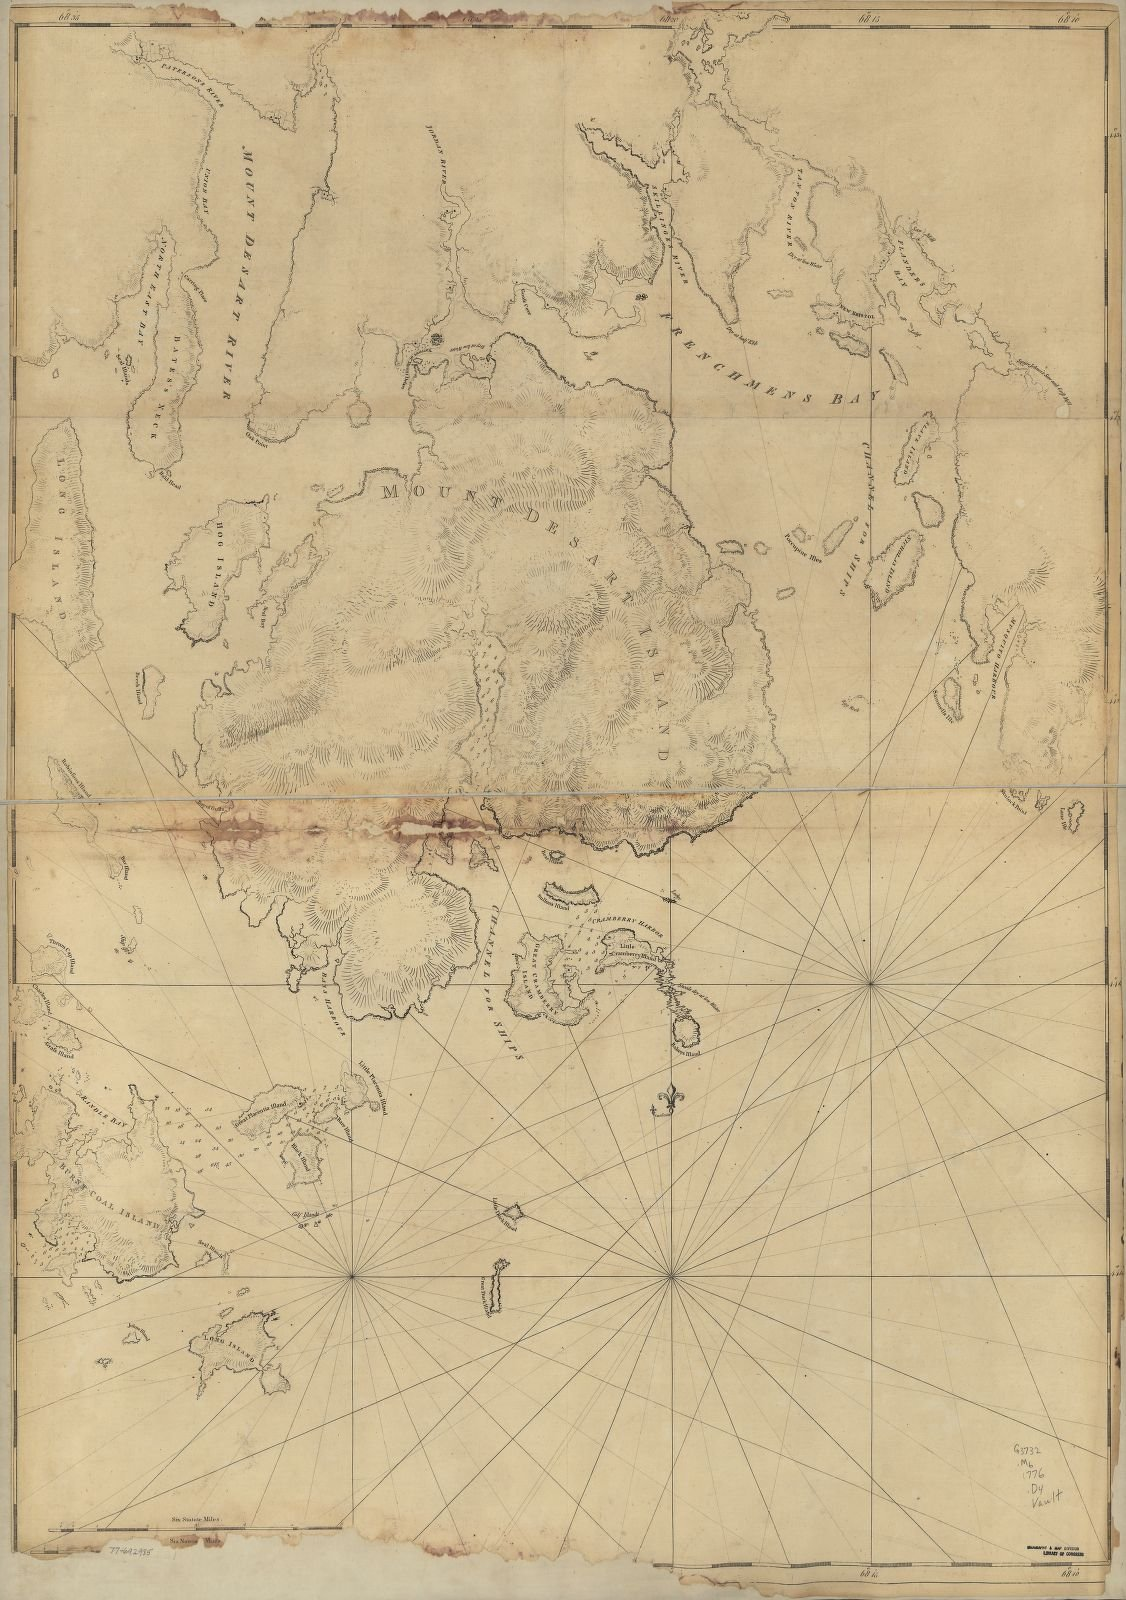 """A 1776 map of the Maine coastline nearby. Ellsworth is just off the upper left edge near the mouth of the """"Mount Desert River"""" (now called Union River). Col. Black may have led his militia to Mt. Desert Island during the War of 1812."""